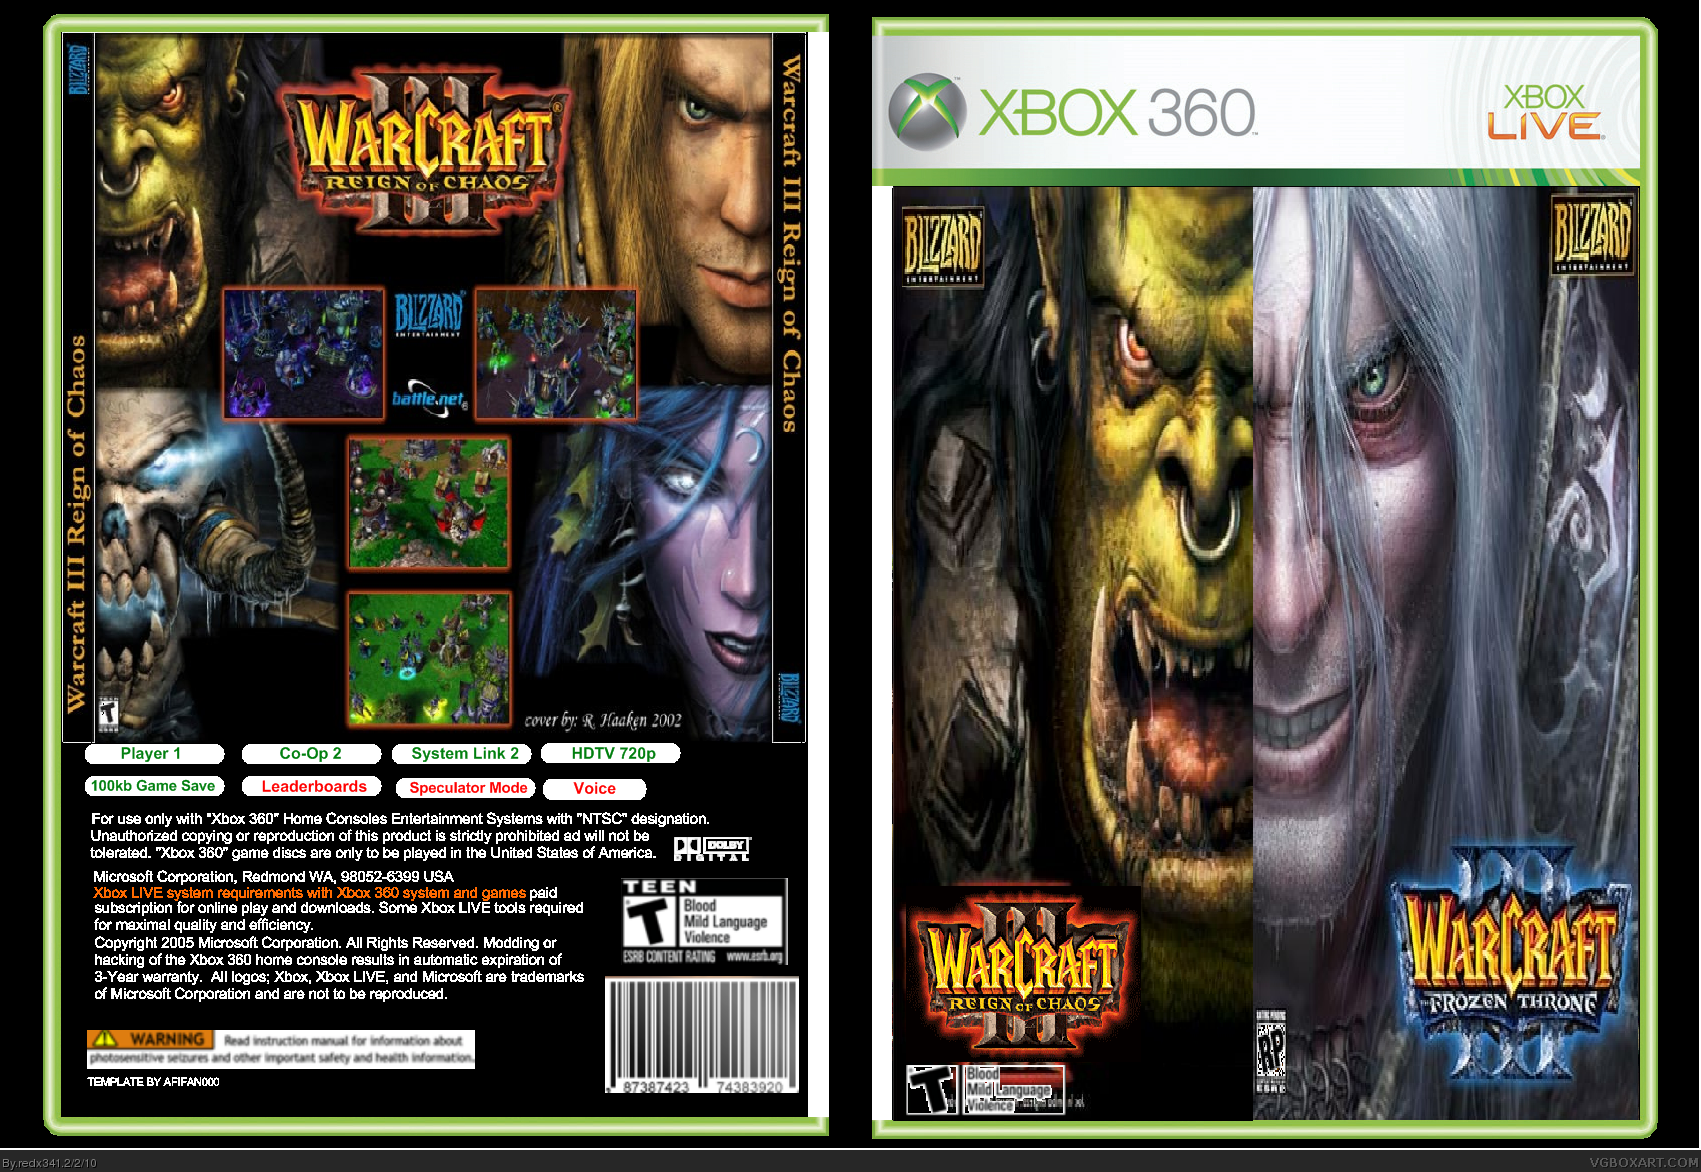 WarCraft Series box cover